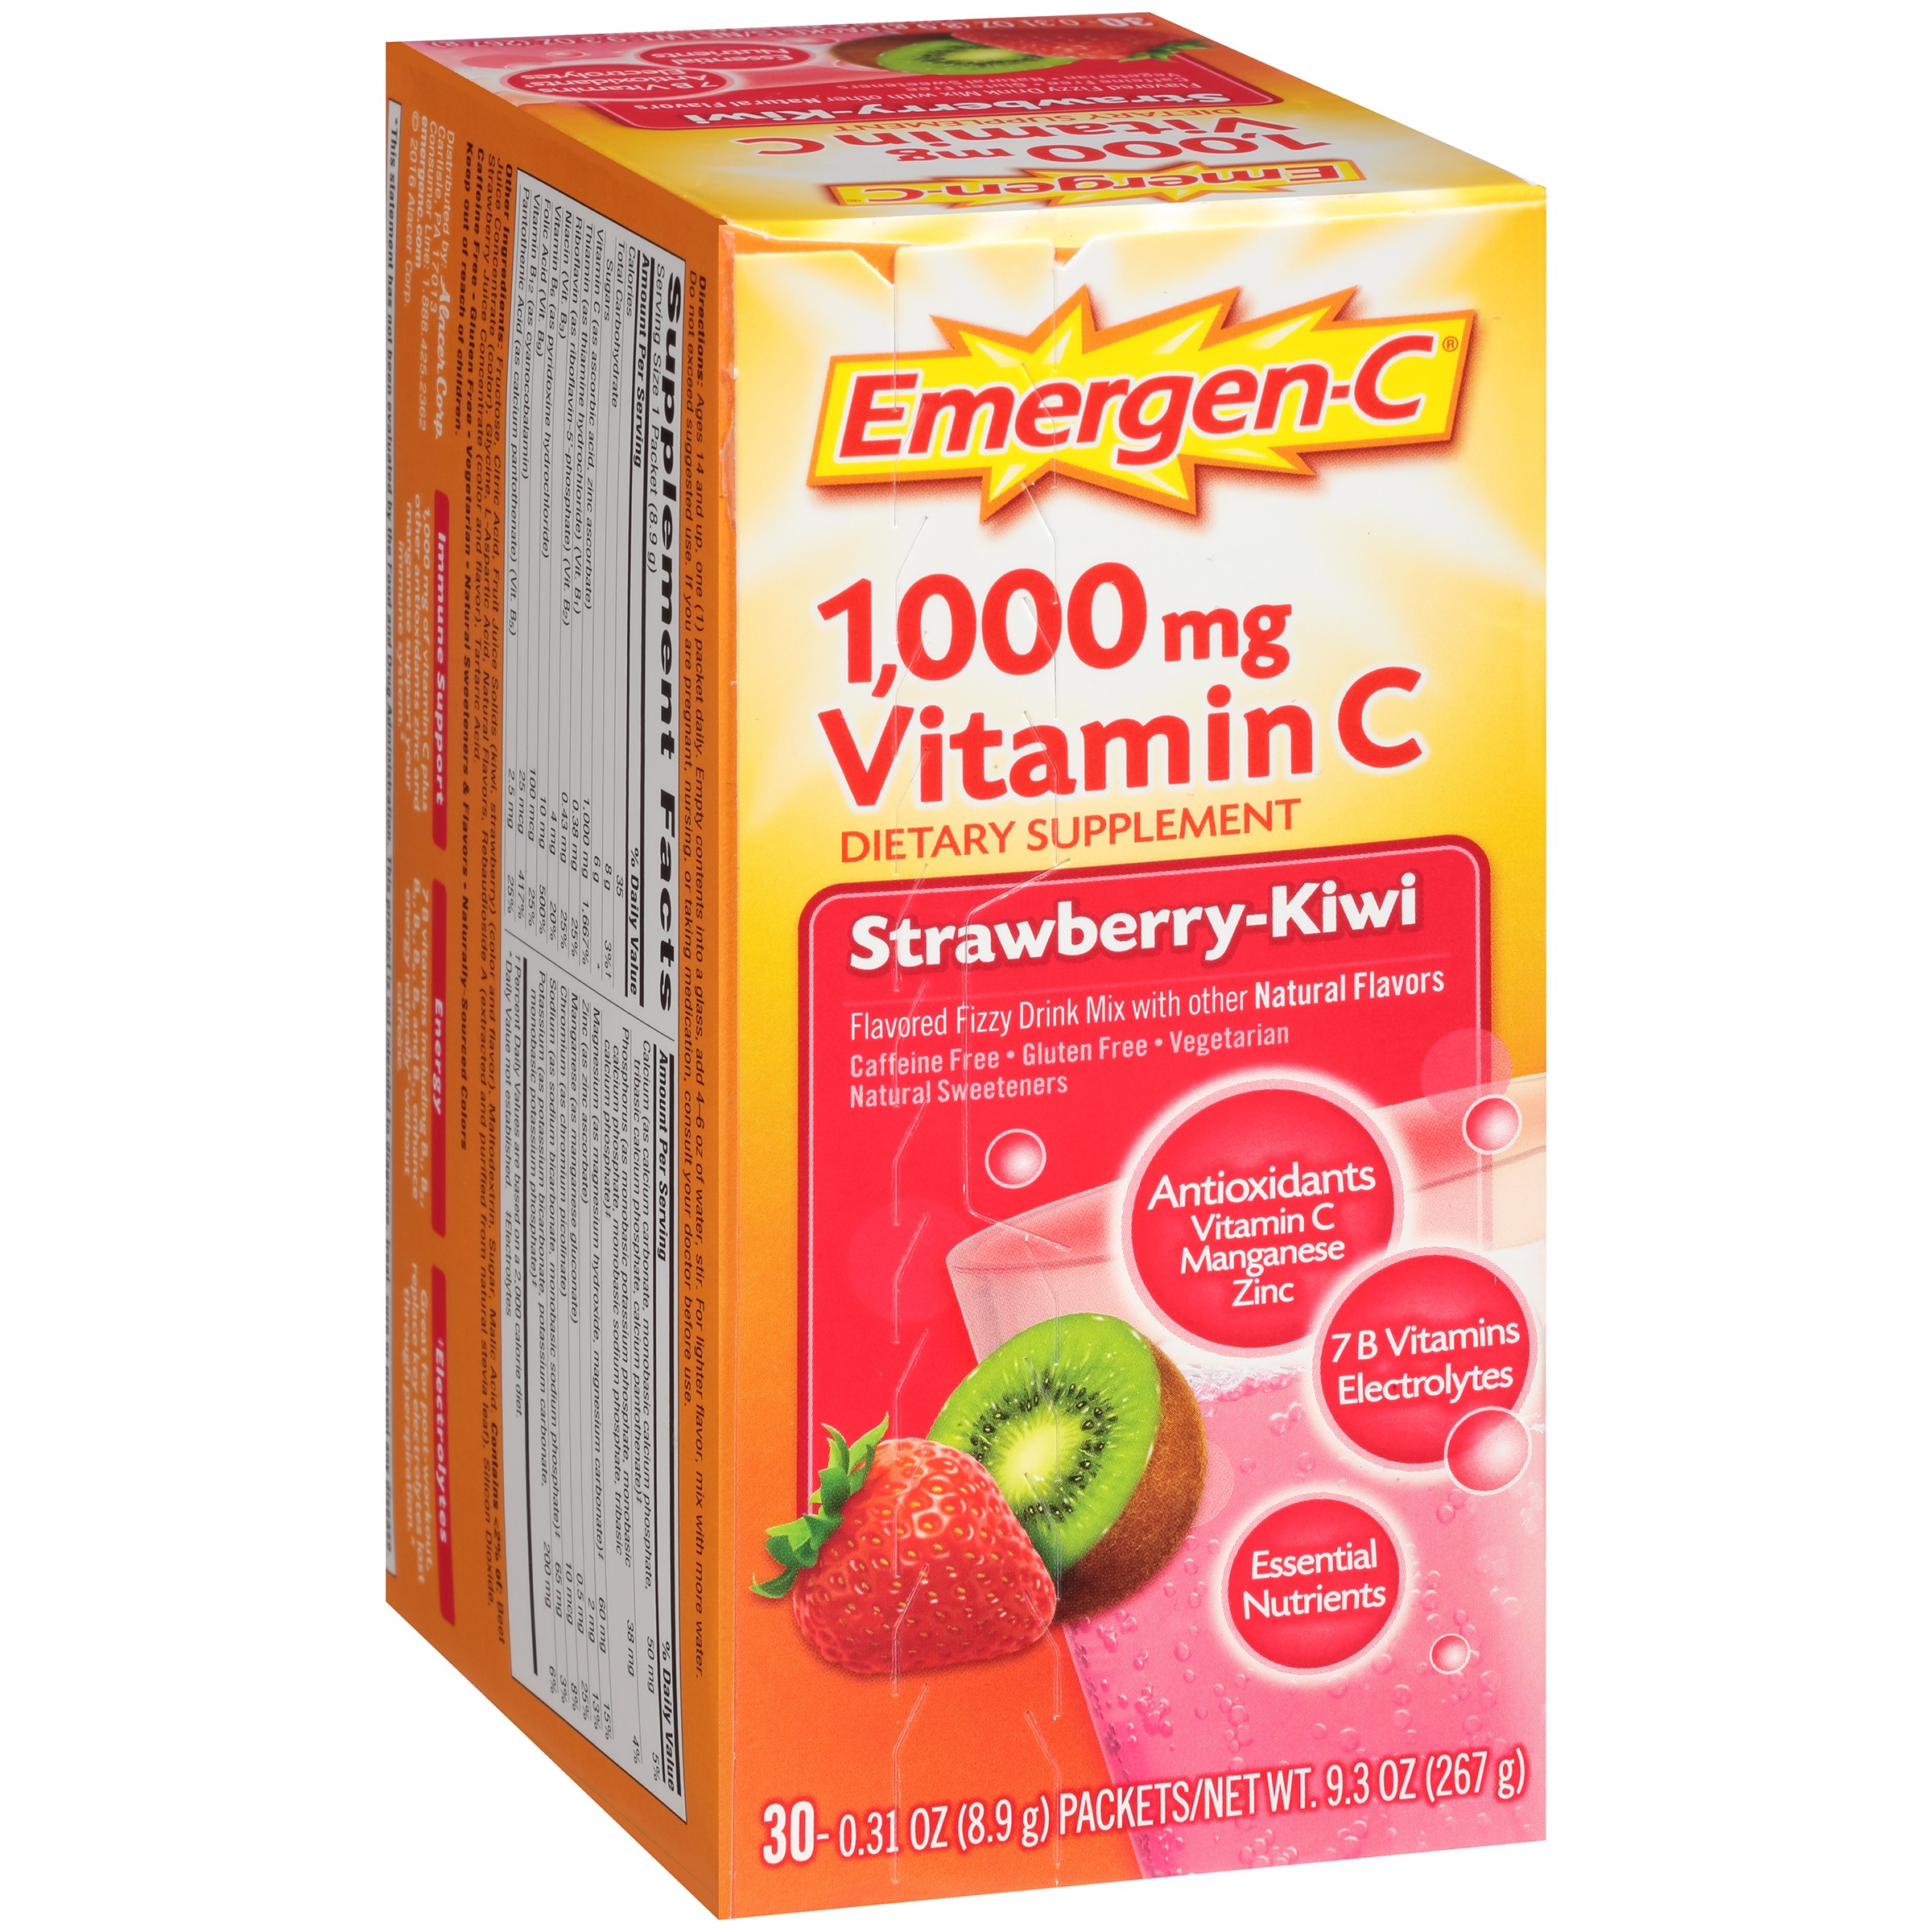 Emergen-C (30 Count, Strawberry-Kiwi Flavor) Dietary Supplement Fizzy Drink Mix With... by Alacer Corp.